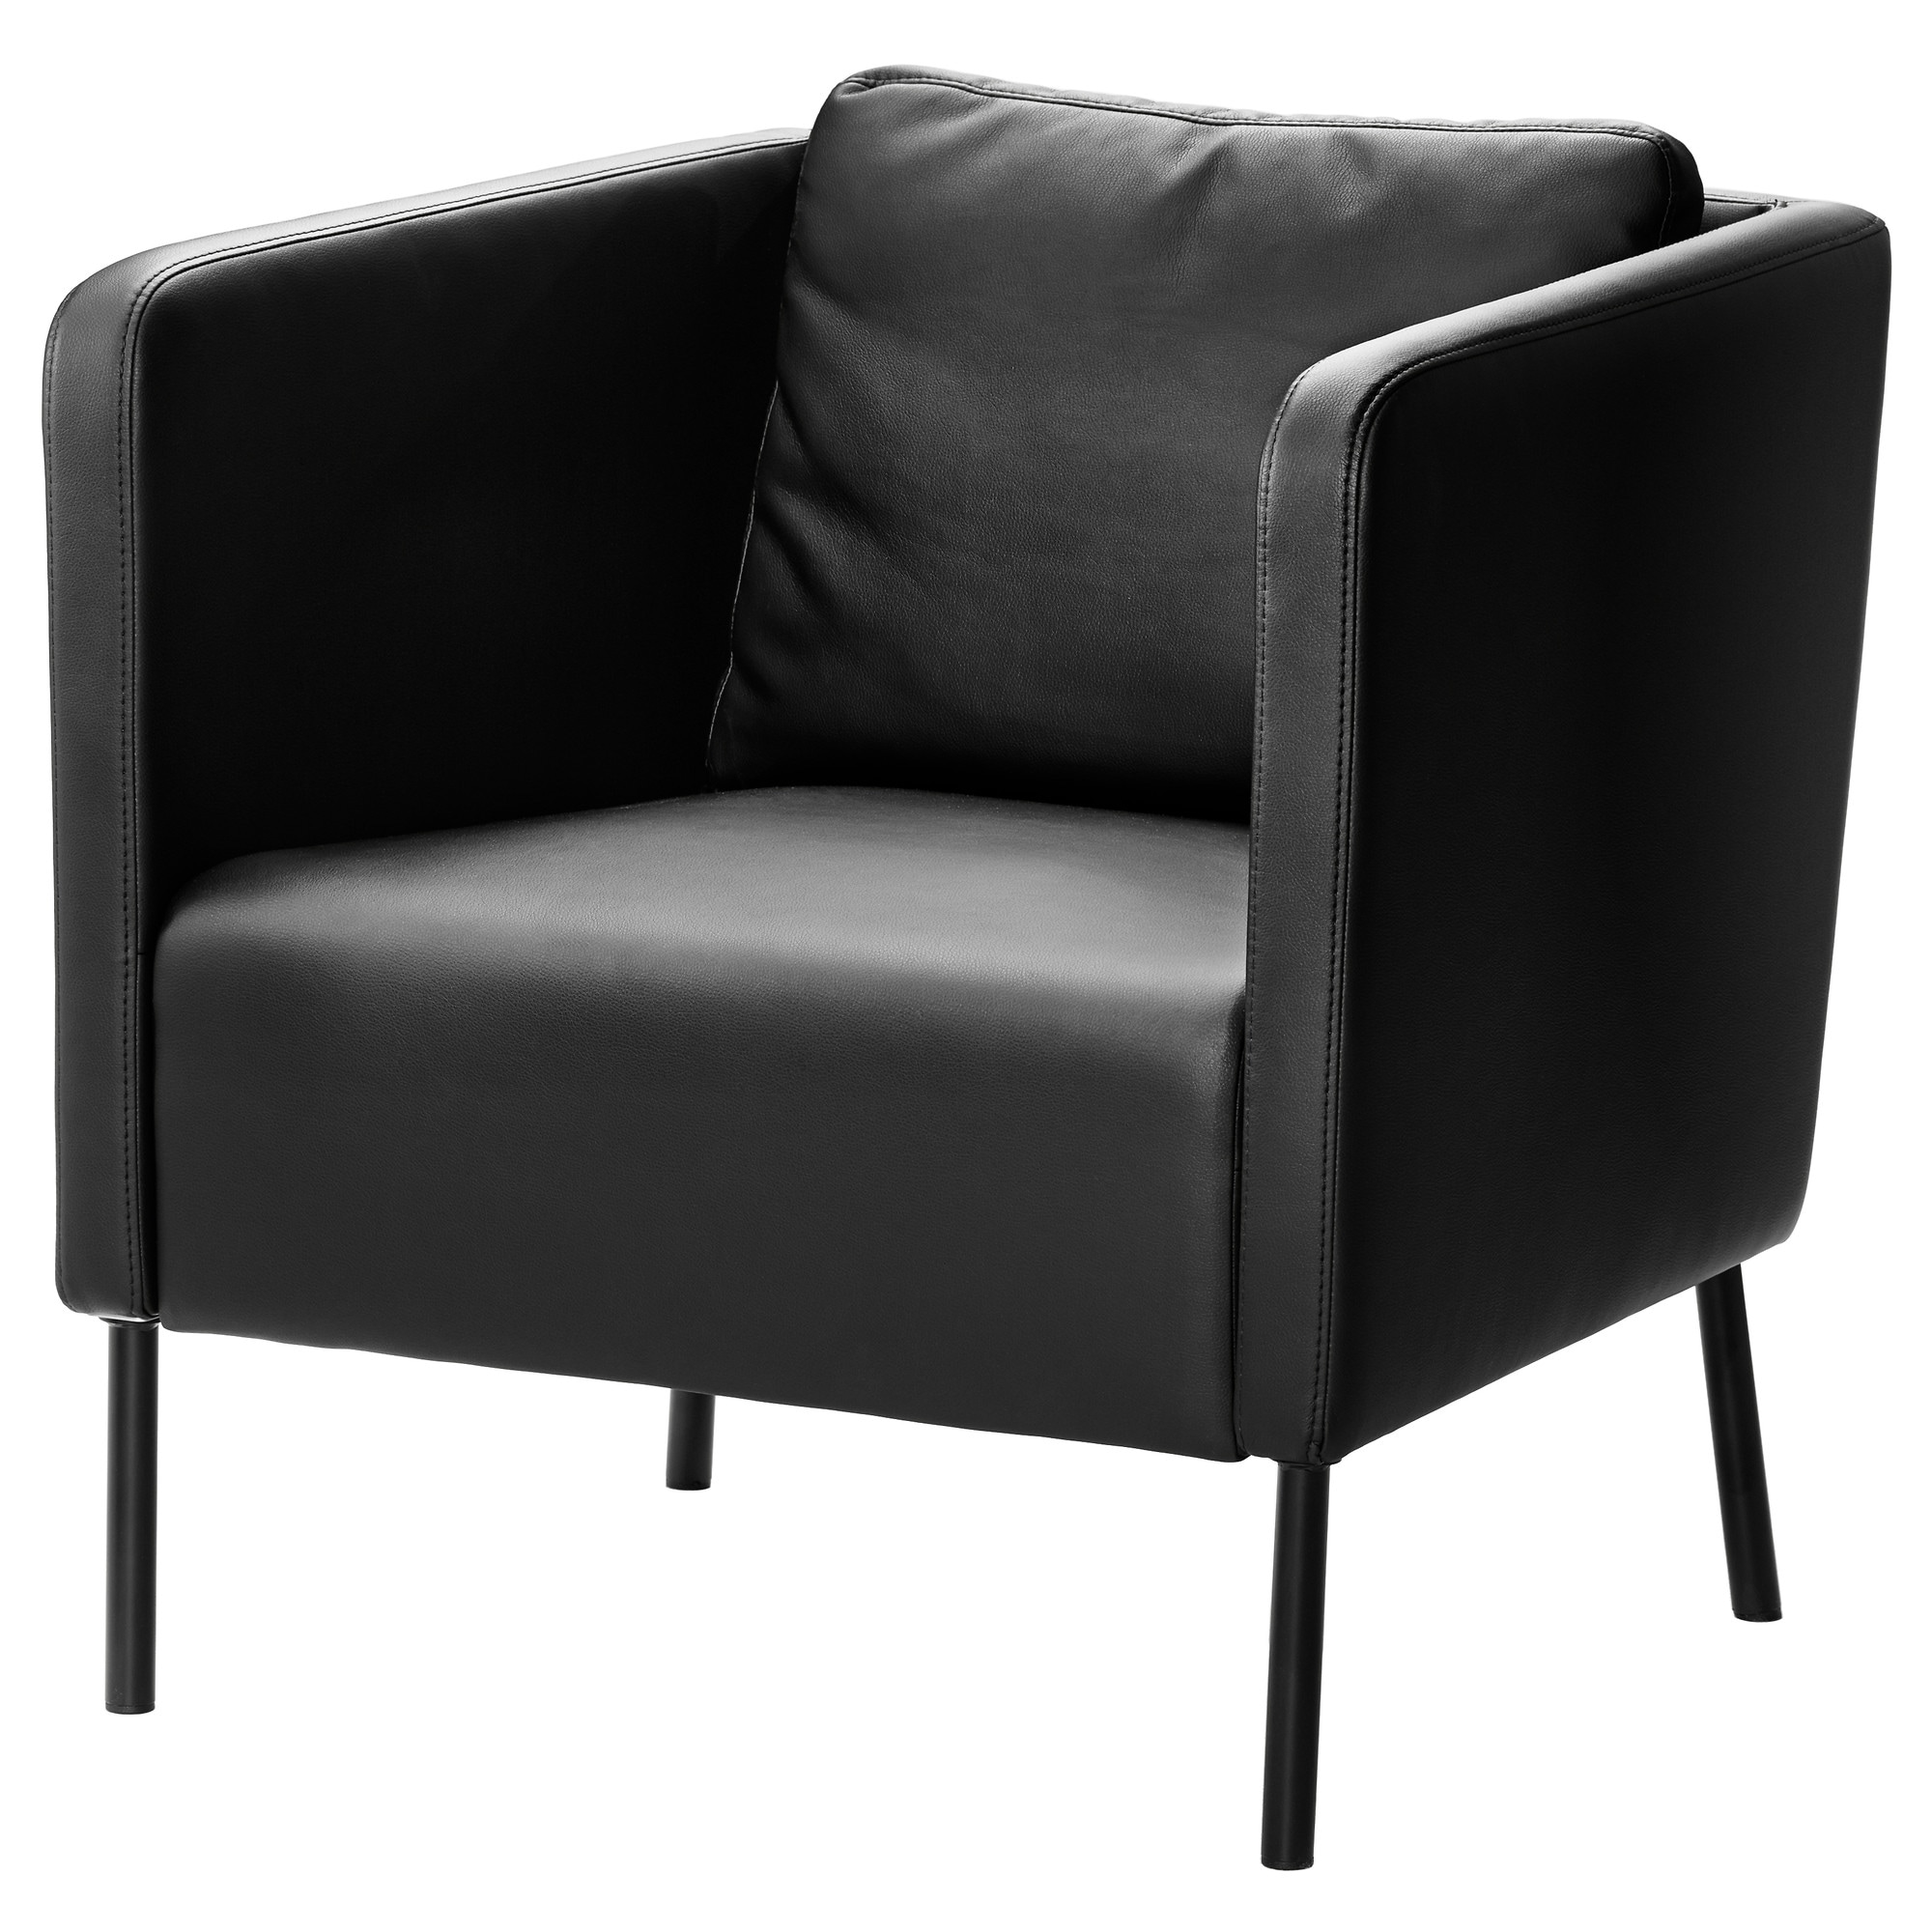 Black chair and white chair - Eker Chair Laglig Kimstad Black Width 27 1 2 Depth 28